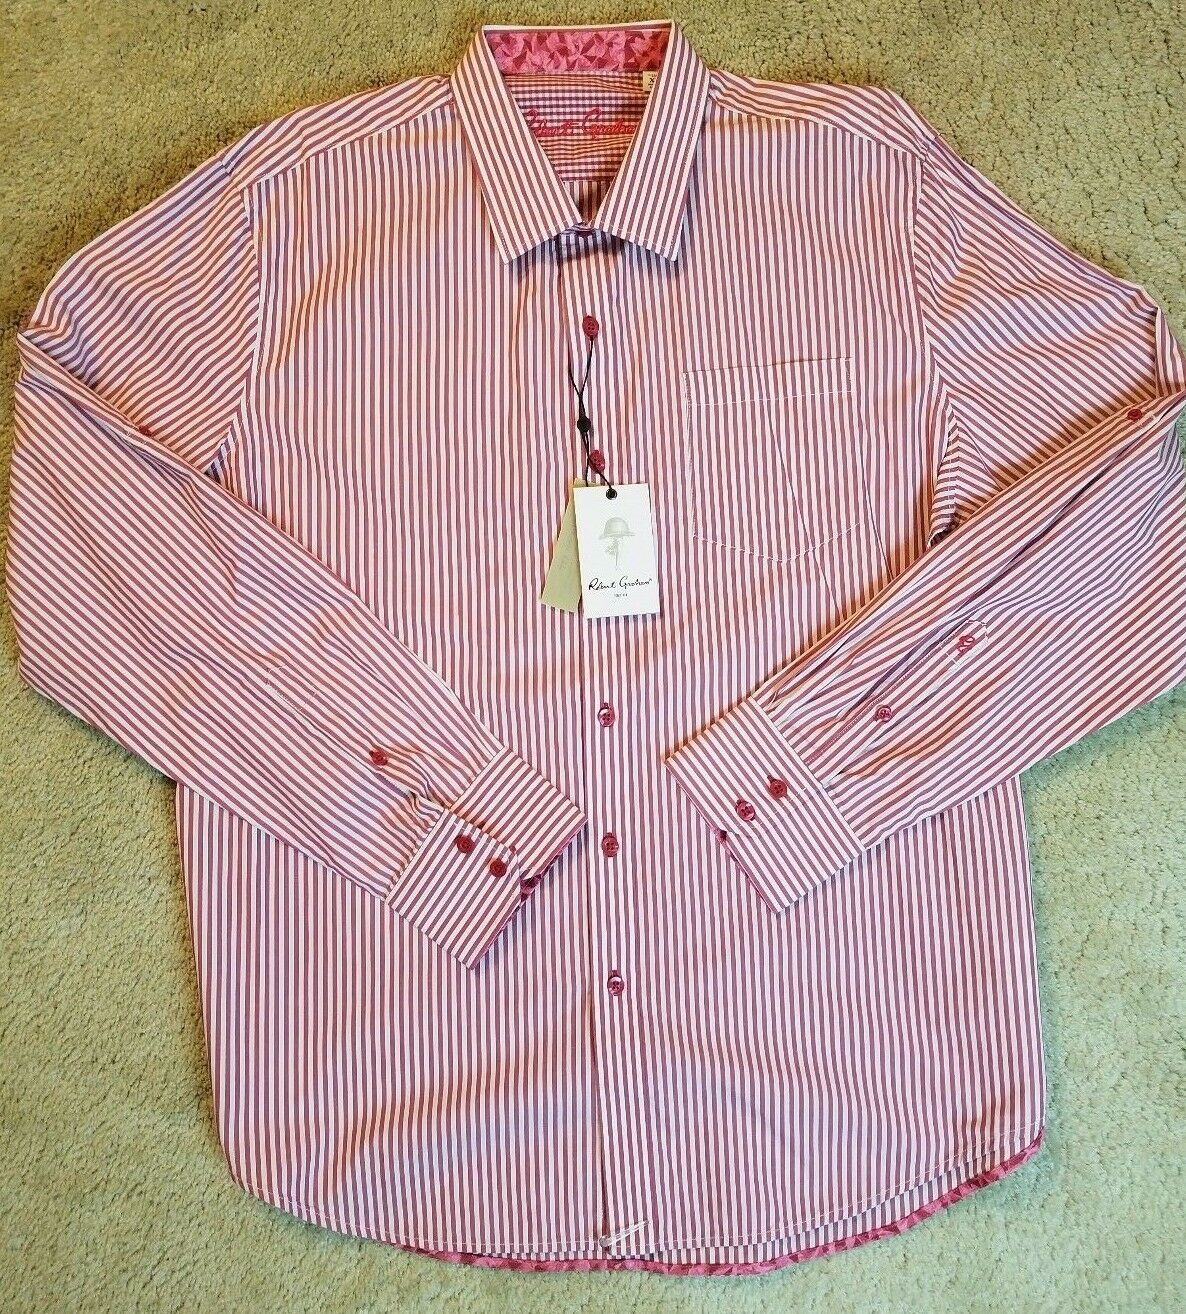 NWT Herren ROBERT GRAHAM BENEDETTO BERRY DRESS SHIRT SIZE XL NEW MSRP 198